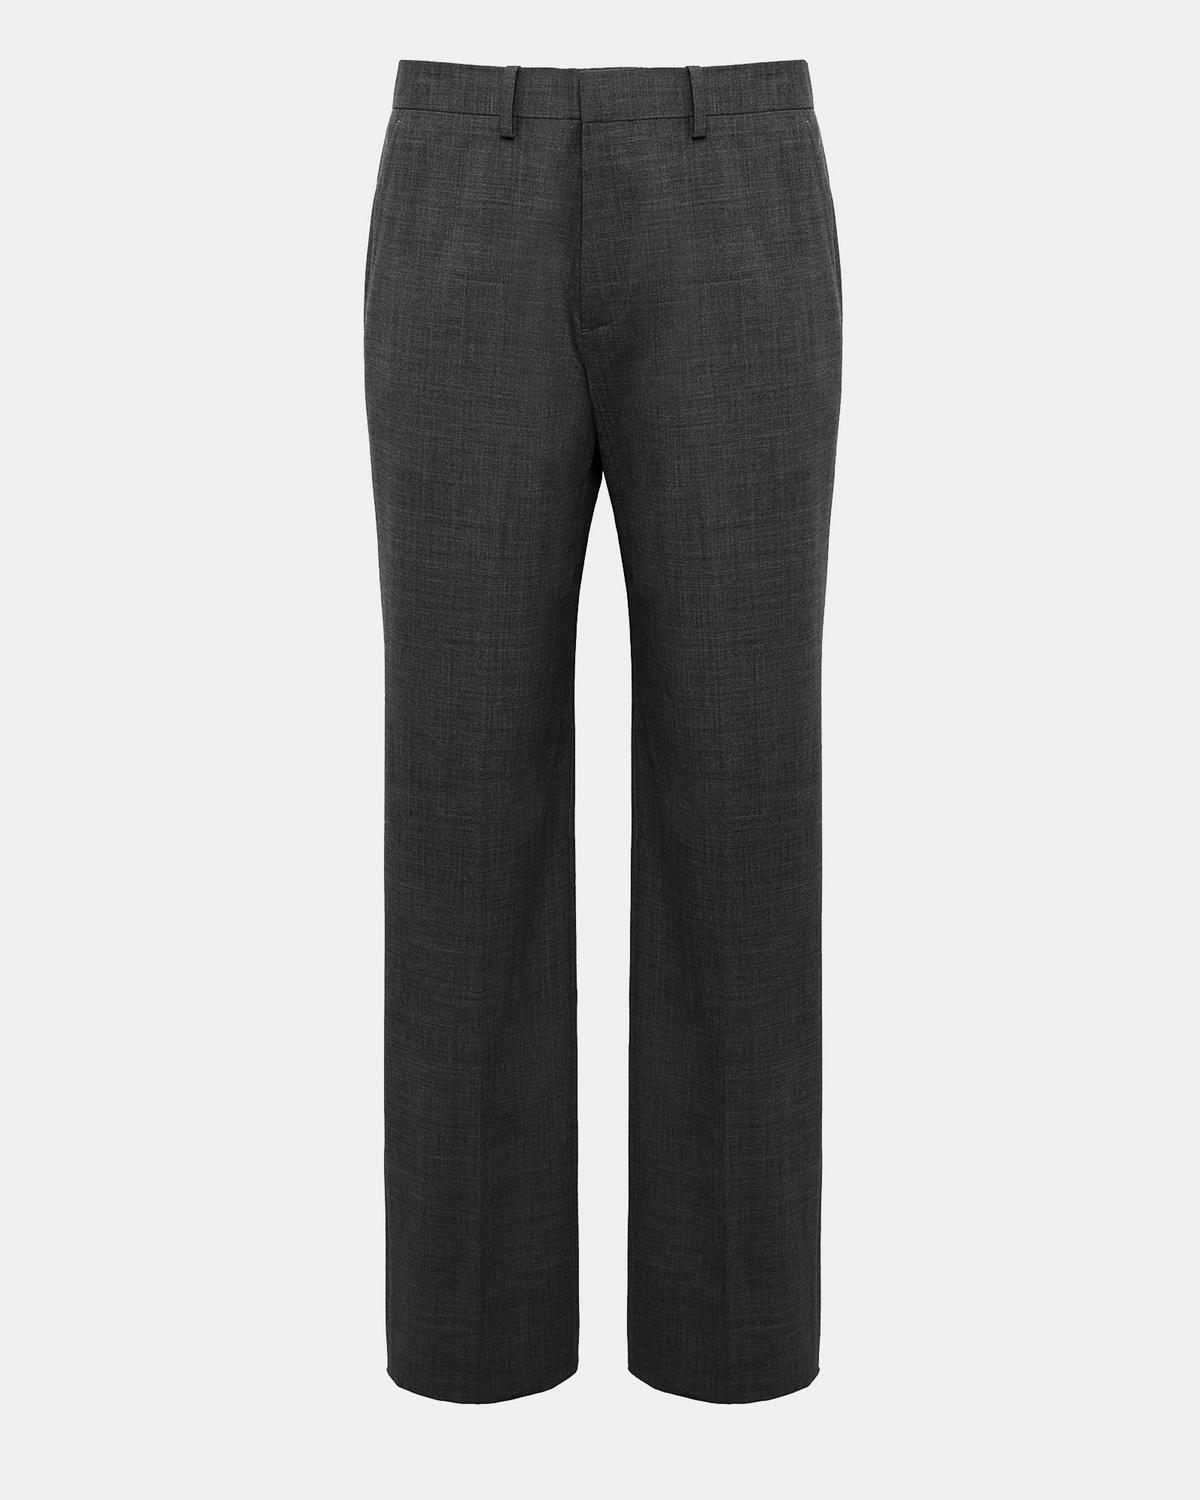 Stretch Wool Marlo Pant